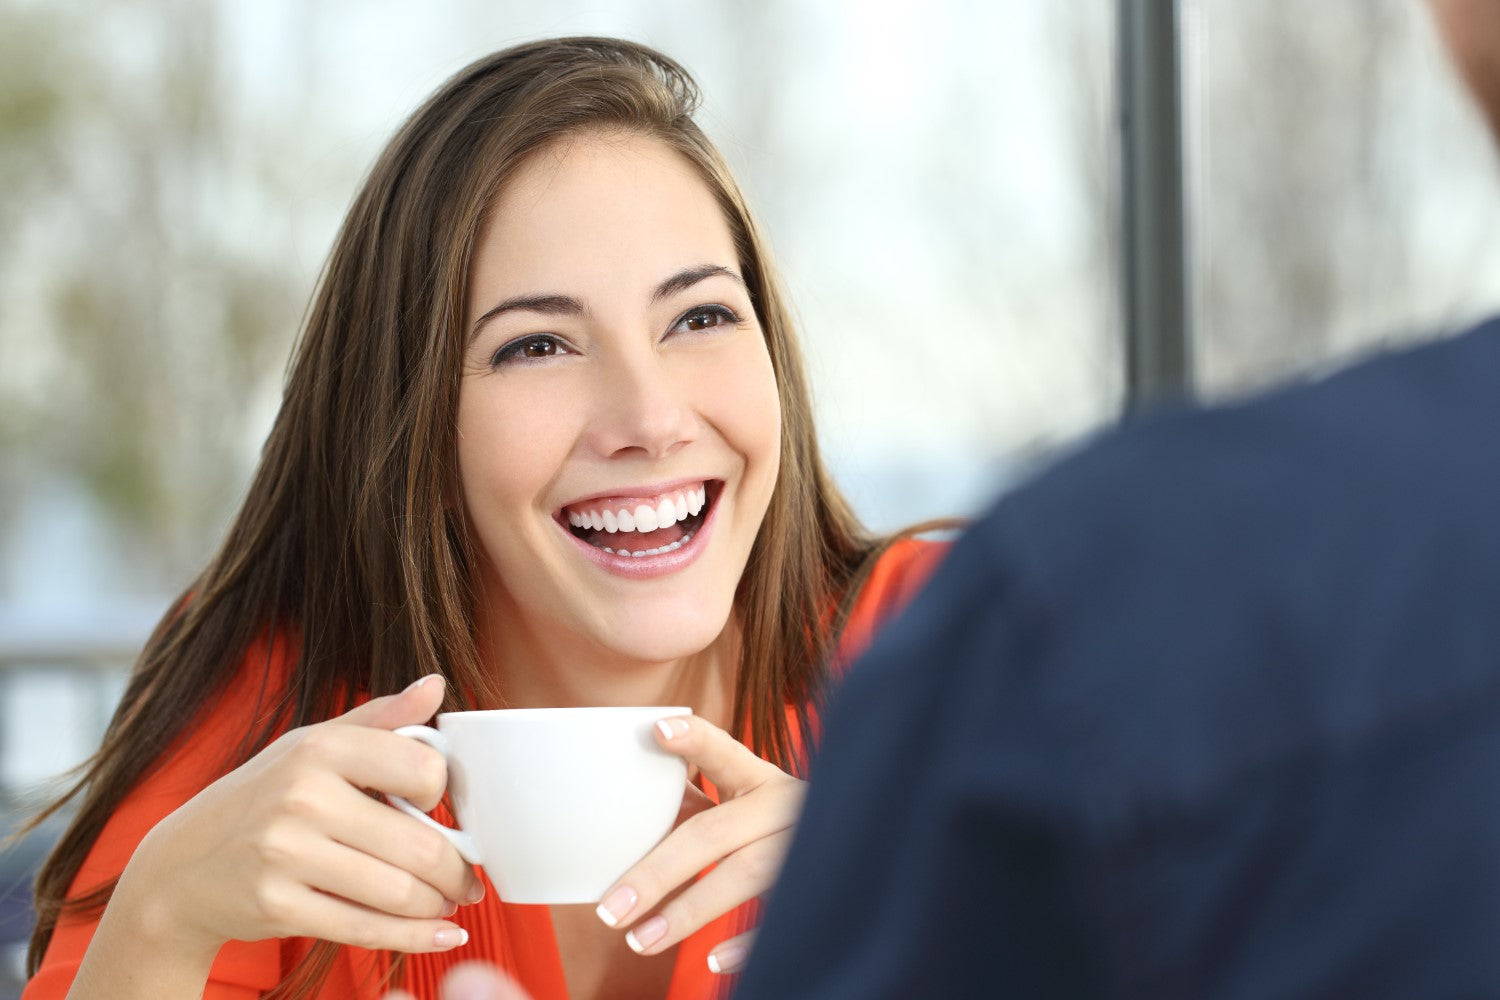 lady laughing with holding a coffee